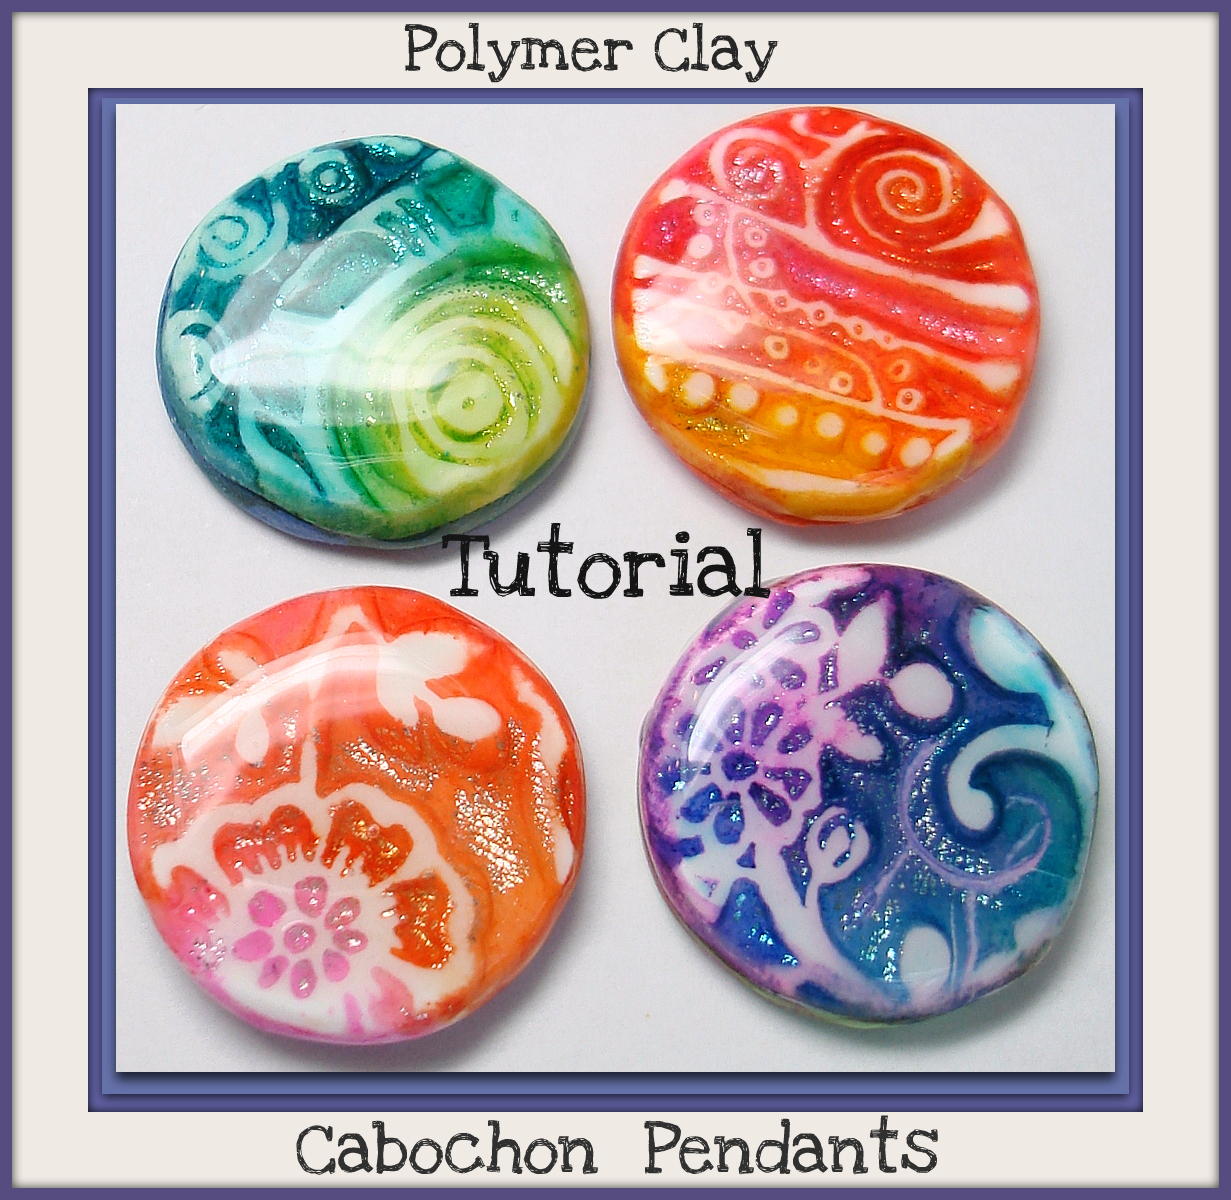 polymer clay projects Digiloom building sets & blocks disney family crafts dolls & doll houses dolls doll houses dress up & creative play early premium polymer clay by craft smart® $1.